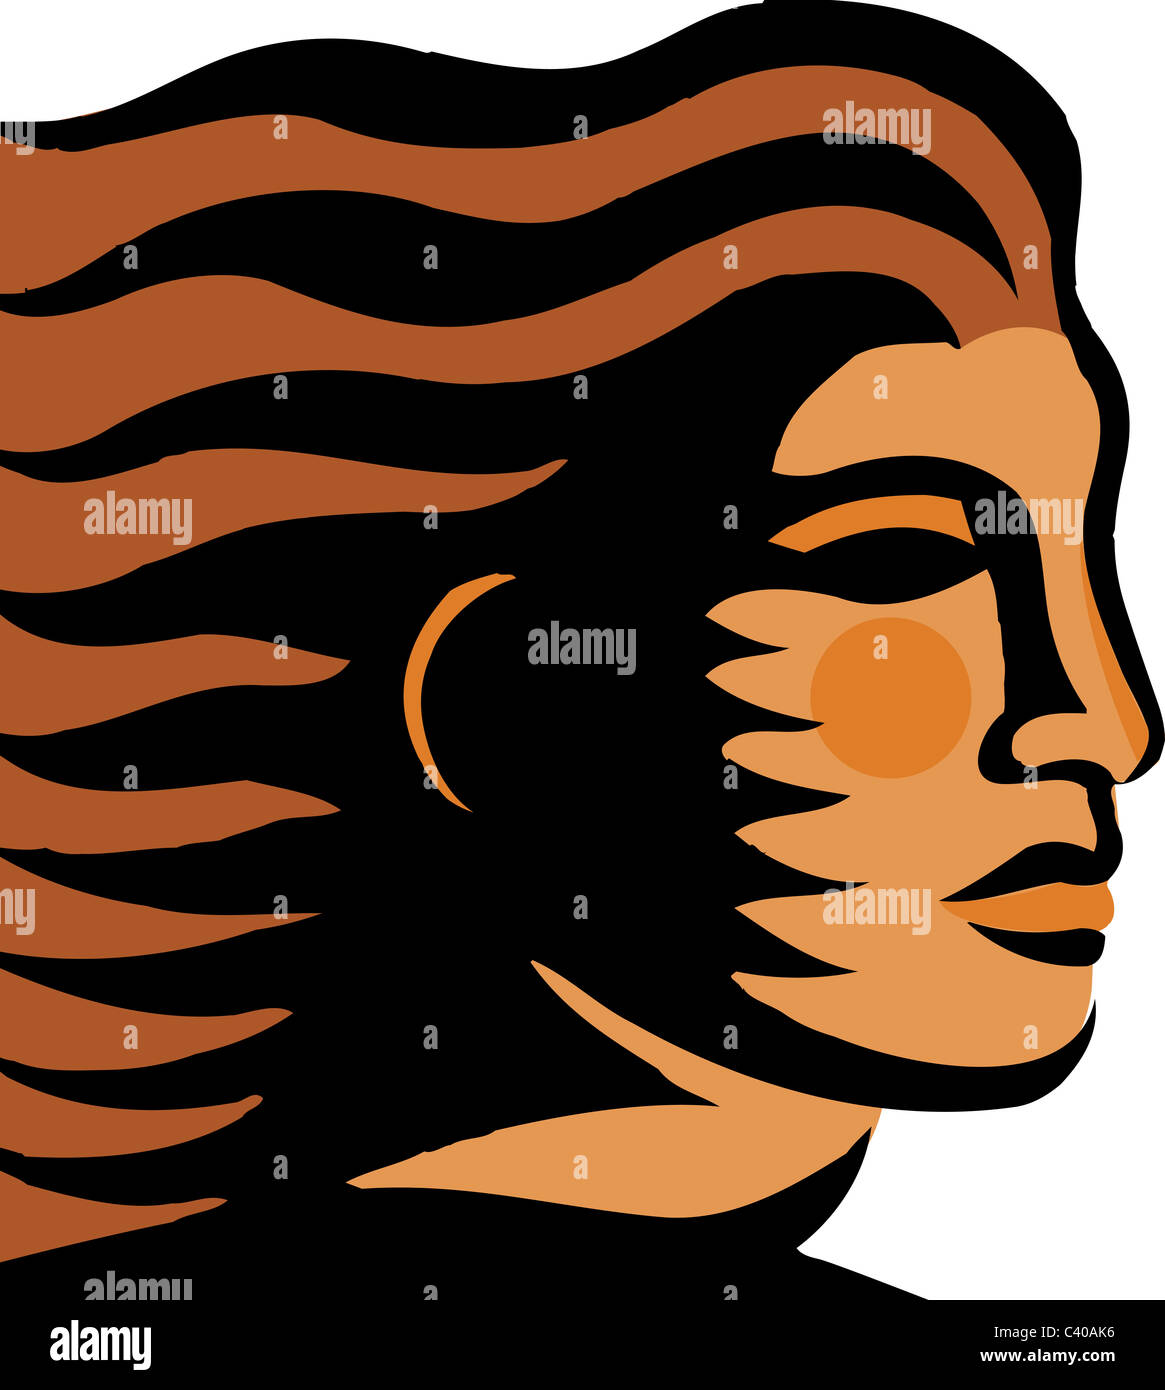 Illustration of a woman with hair blowing in the wind - Stock Image